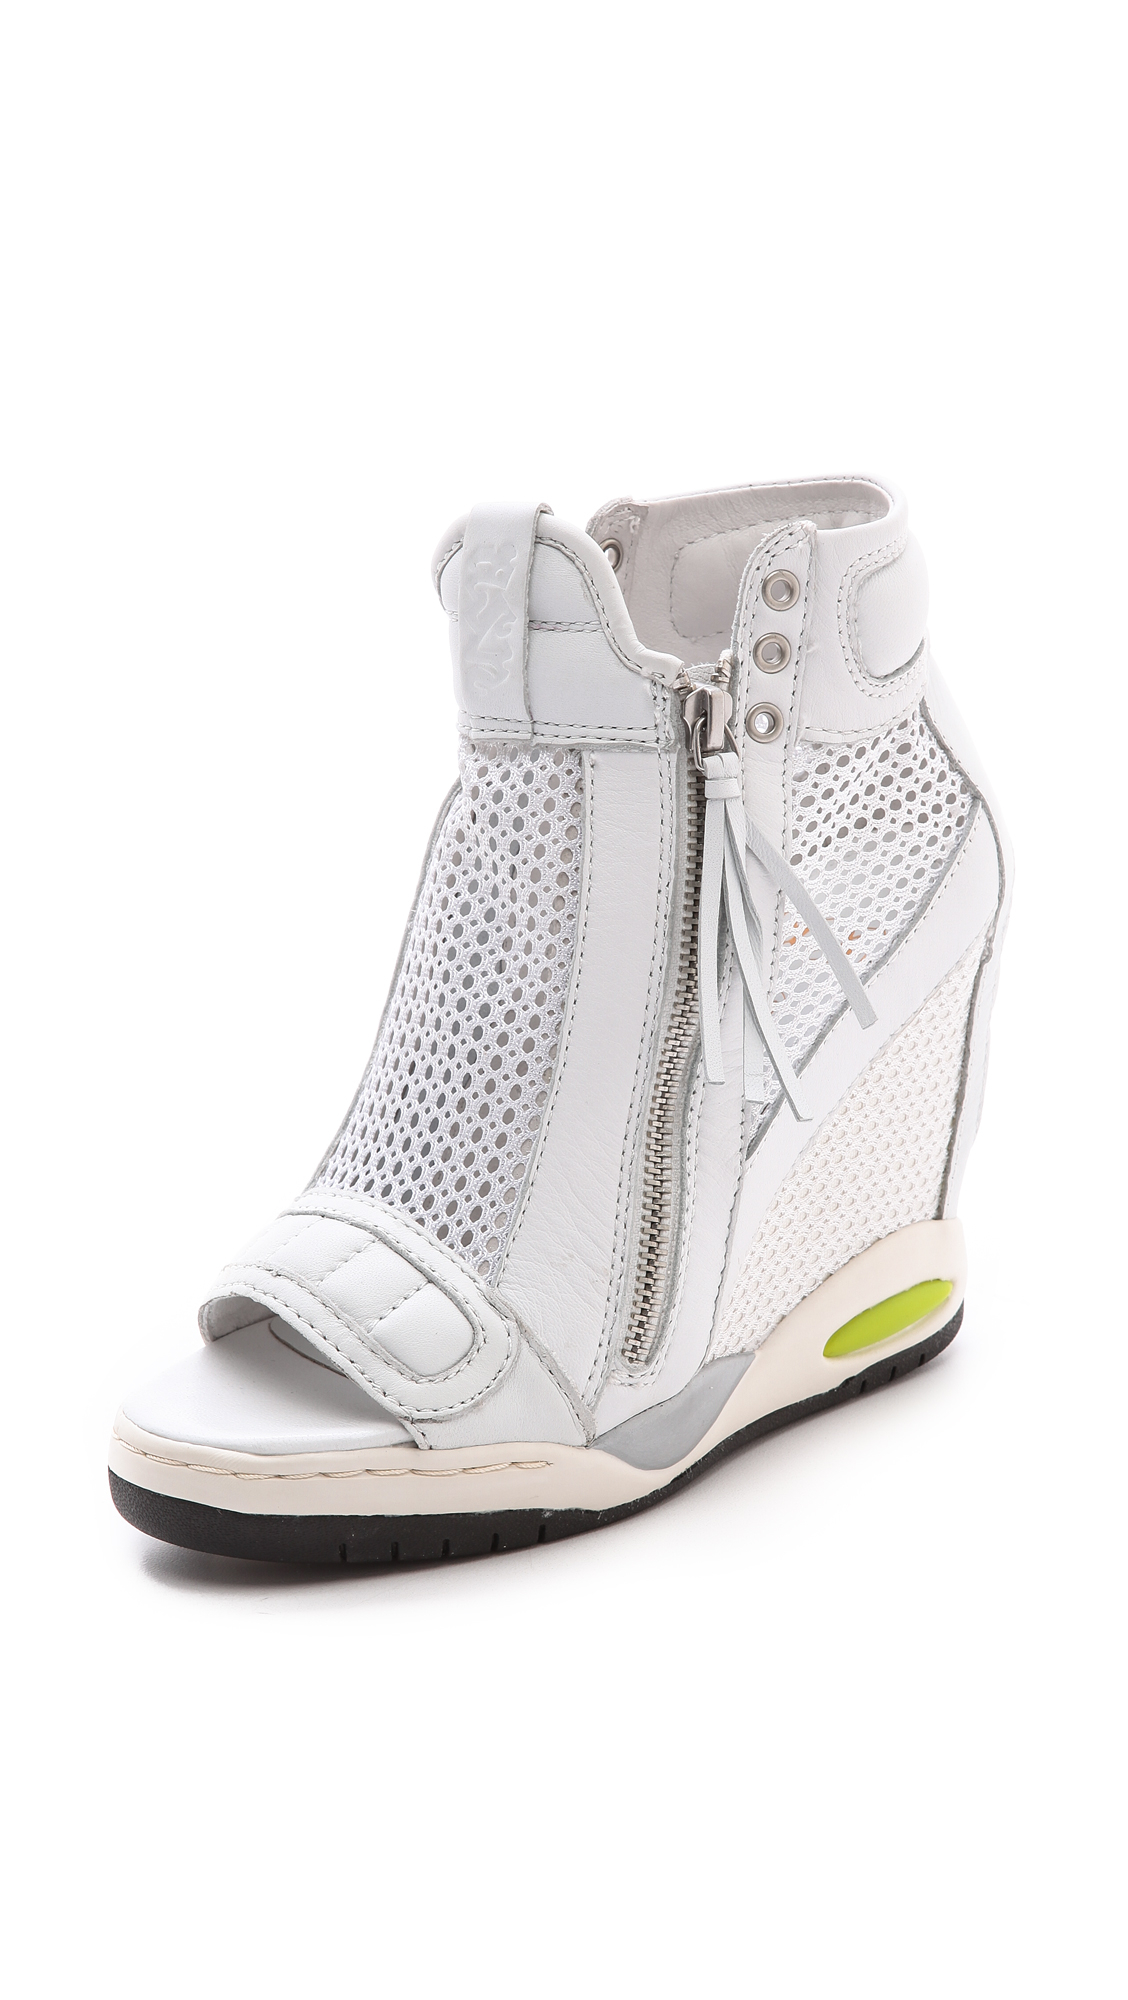 buy cheap under $60 Ash open toe sneaker shoes 2014 newest online outlet release dates outlet pay with visa TqbkoZHYn8